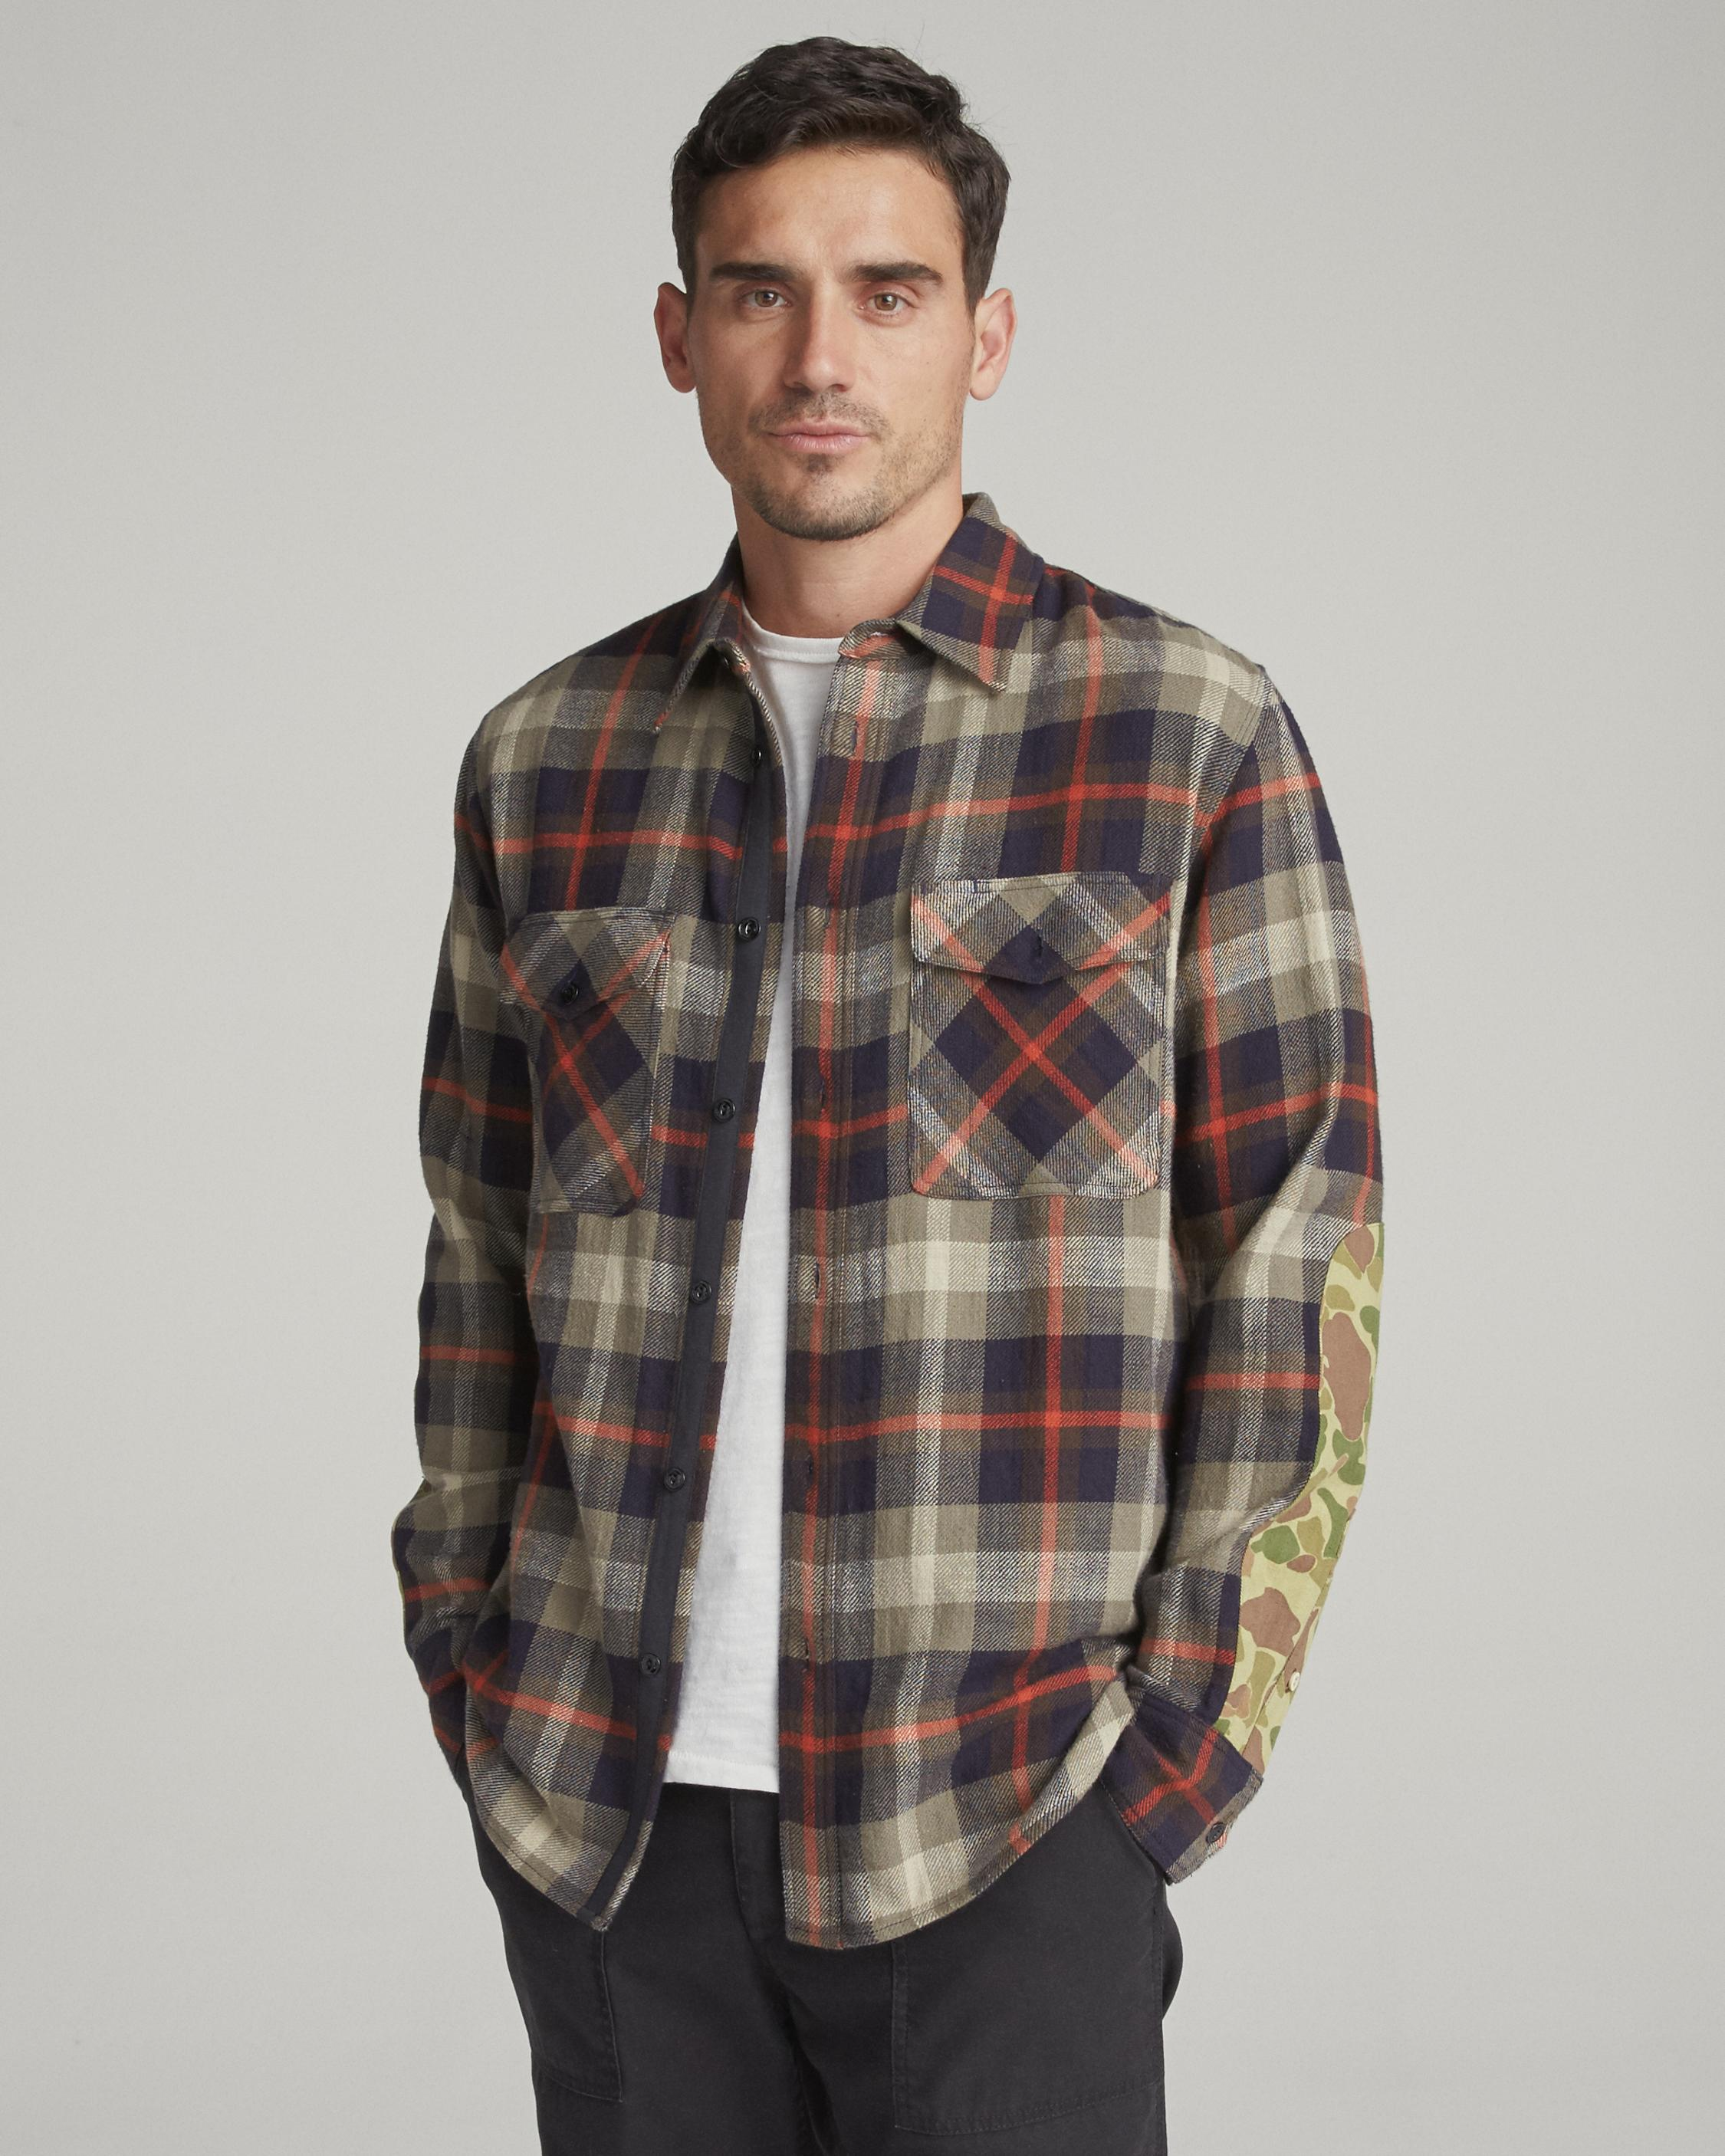 Free Shipping Order Rag & Bone Plaid Button-Up Top Eastbay Cheap Online Release Dates Cheap Online XE1wh